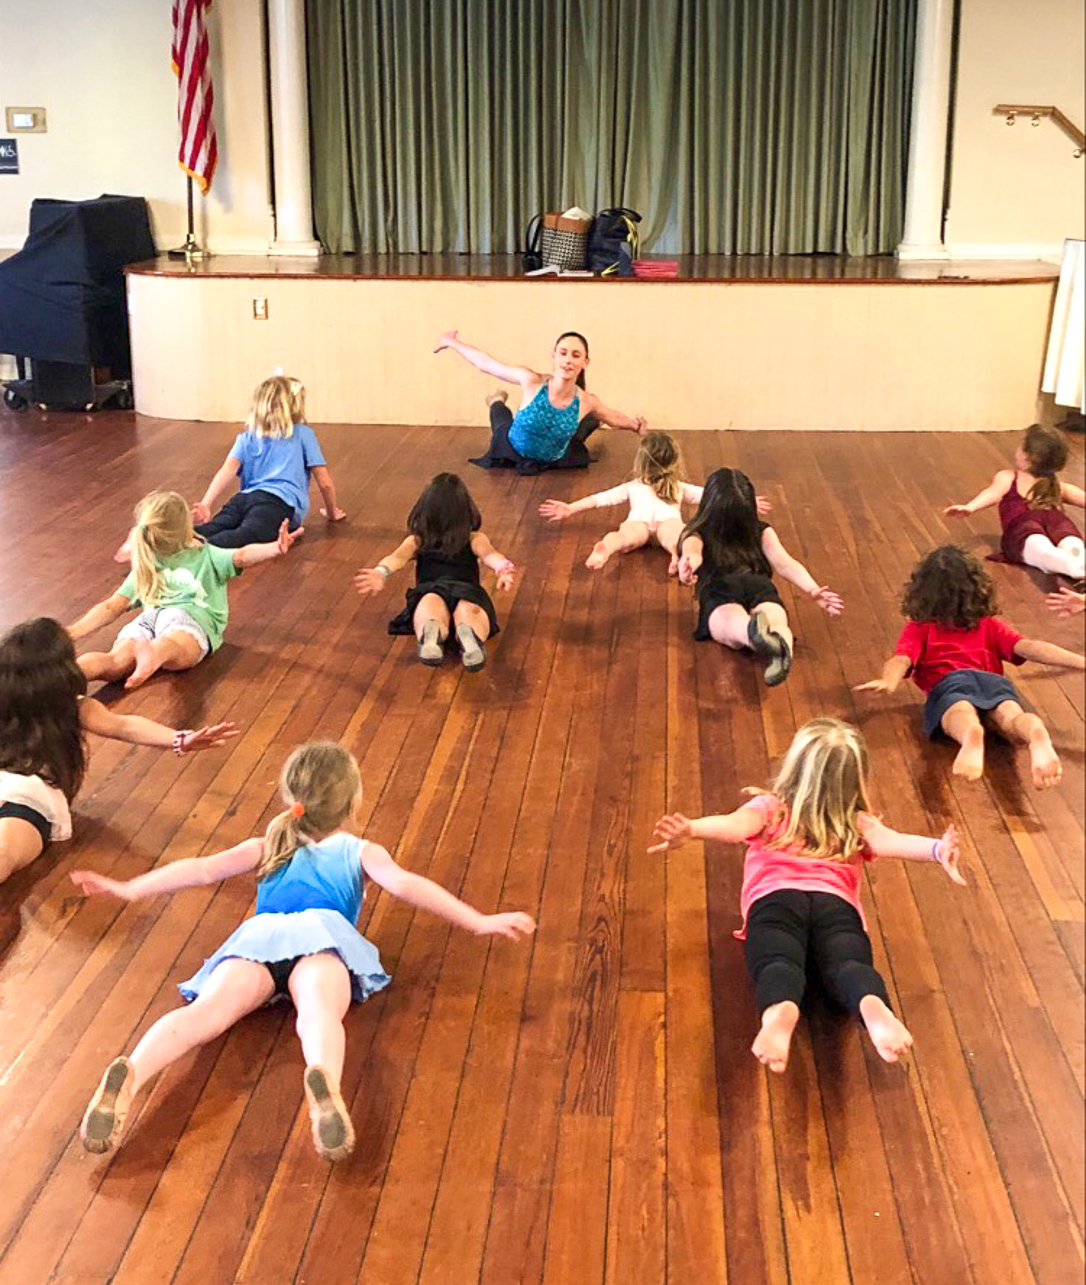 2020 CofC Graduate and Dancer Rebekah Lyons teaches young children dance